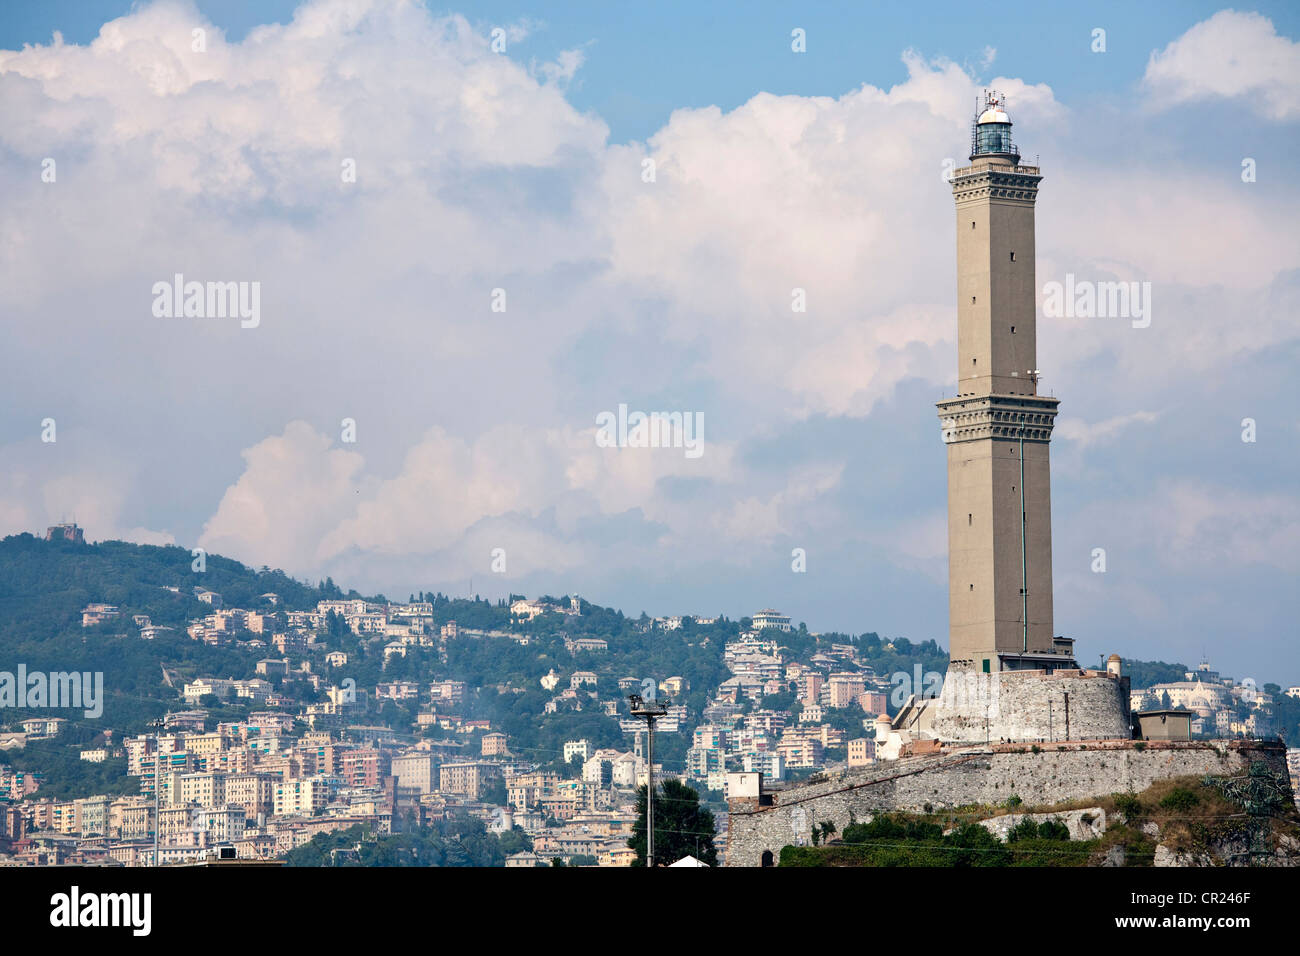 Tower overlooking coastal city - Stock Image